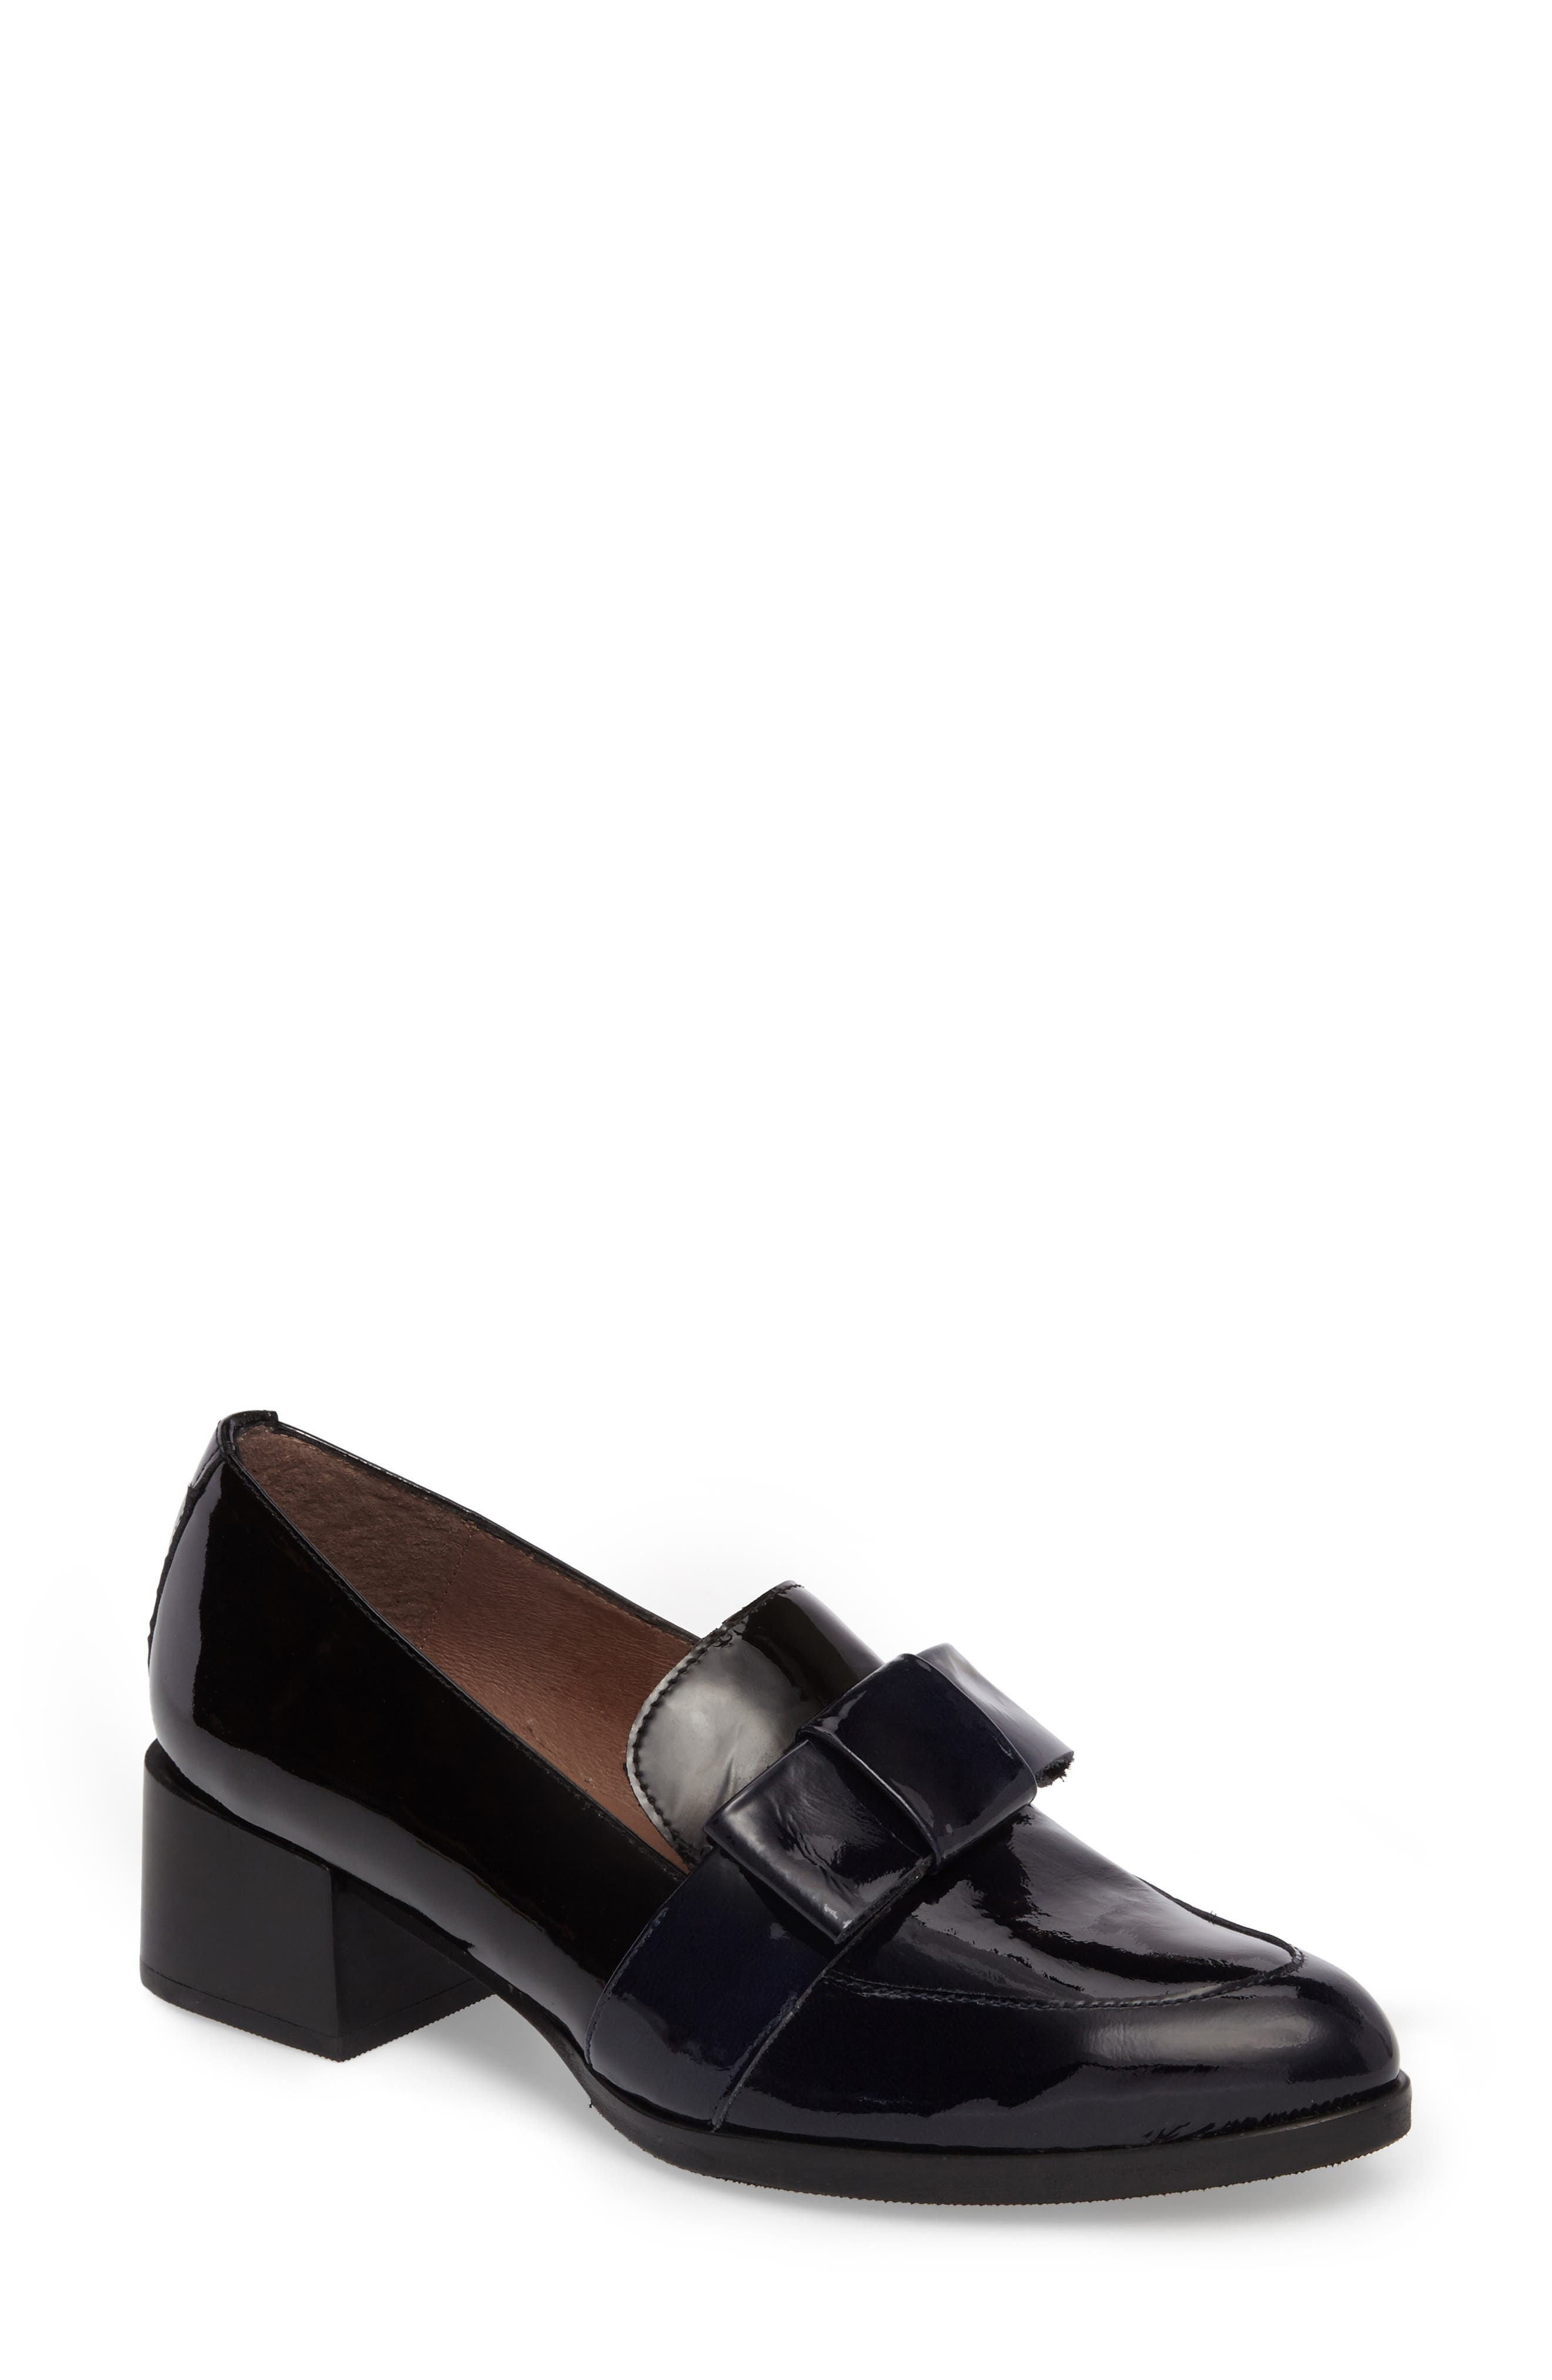 Block Heel Loafer Pump,                             Main thumbnail 1, color,                             NAVY/ BLACK PATENT LEATHER